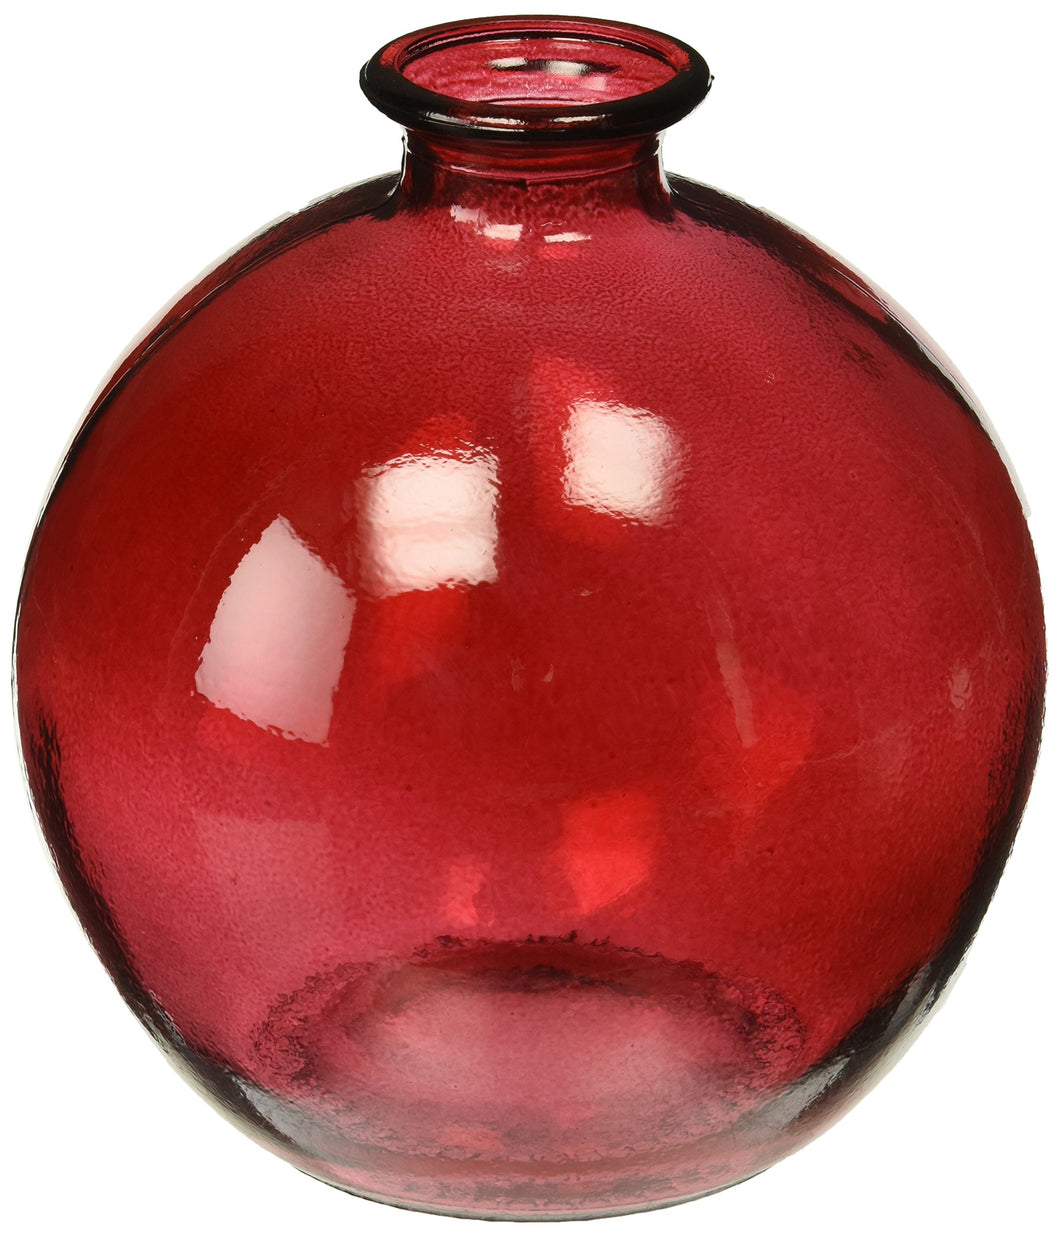 Ball Recycled Glass Vase, 6.75